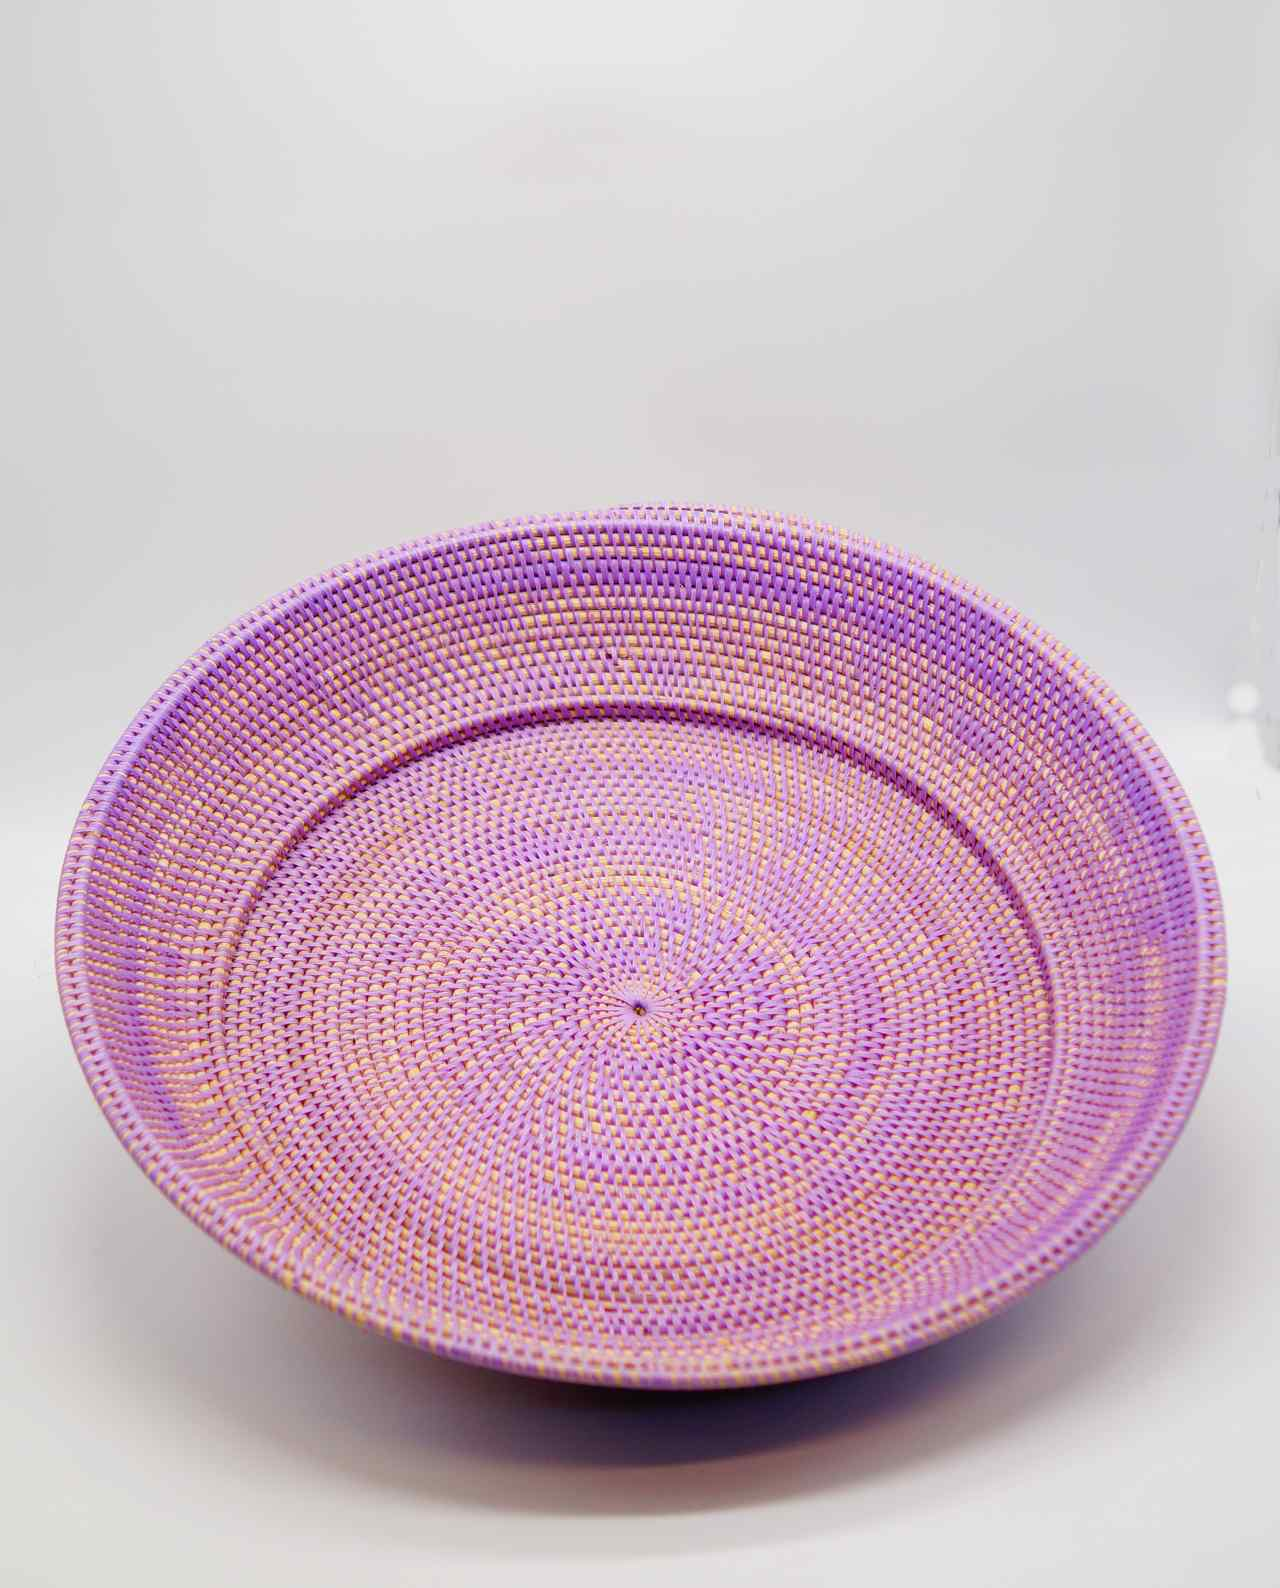 Bowl from Rattan lilac color, Dimension: height 10 cm, diameter 55 cm